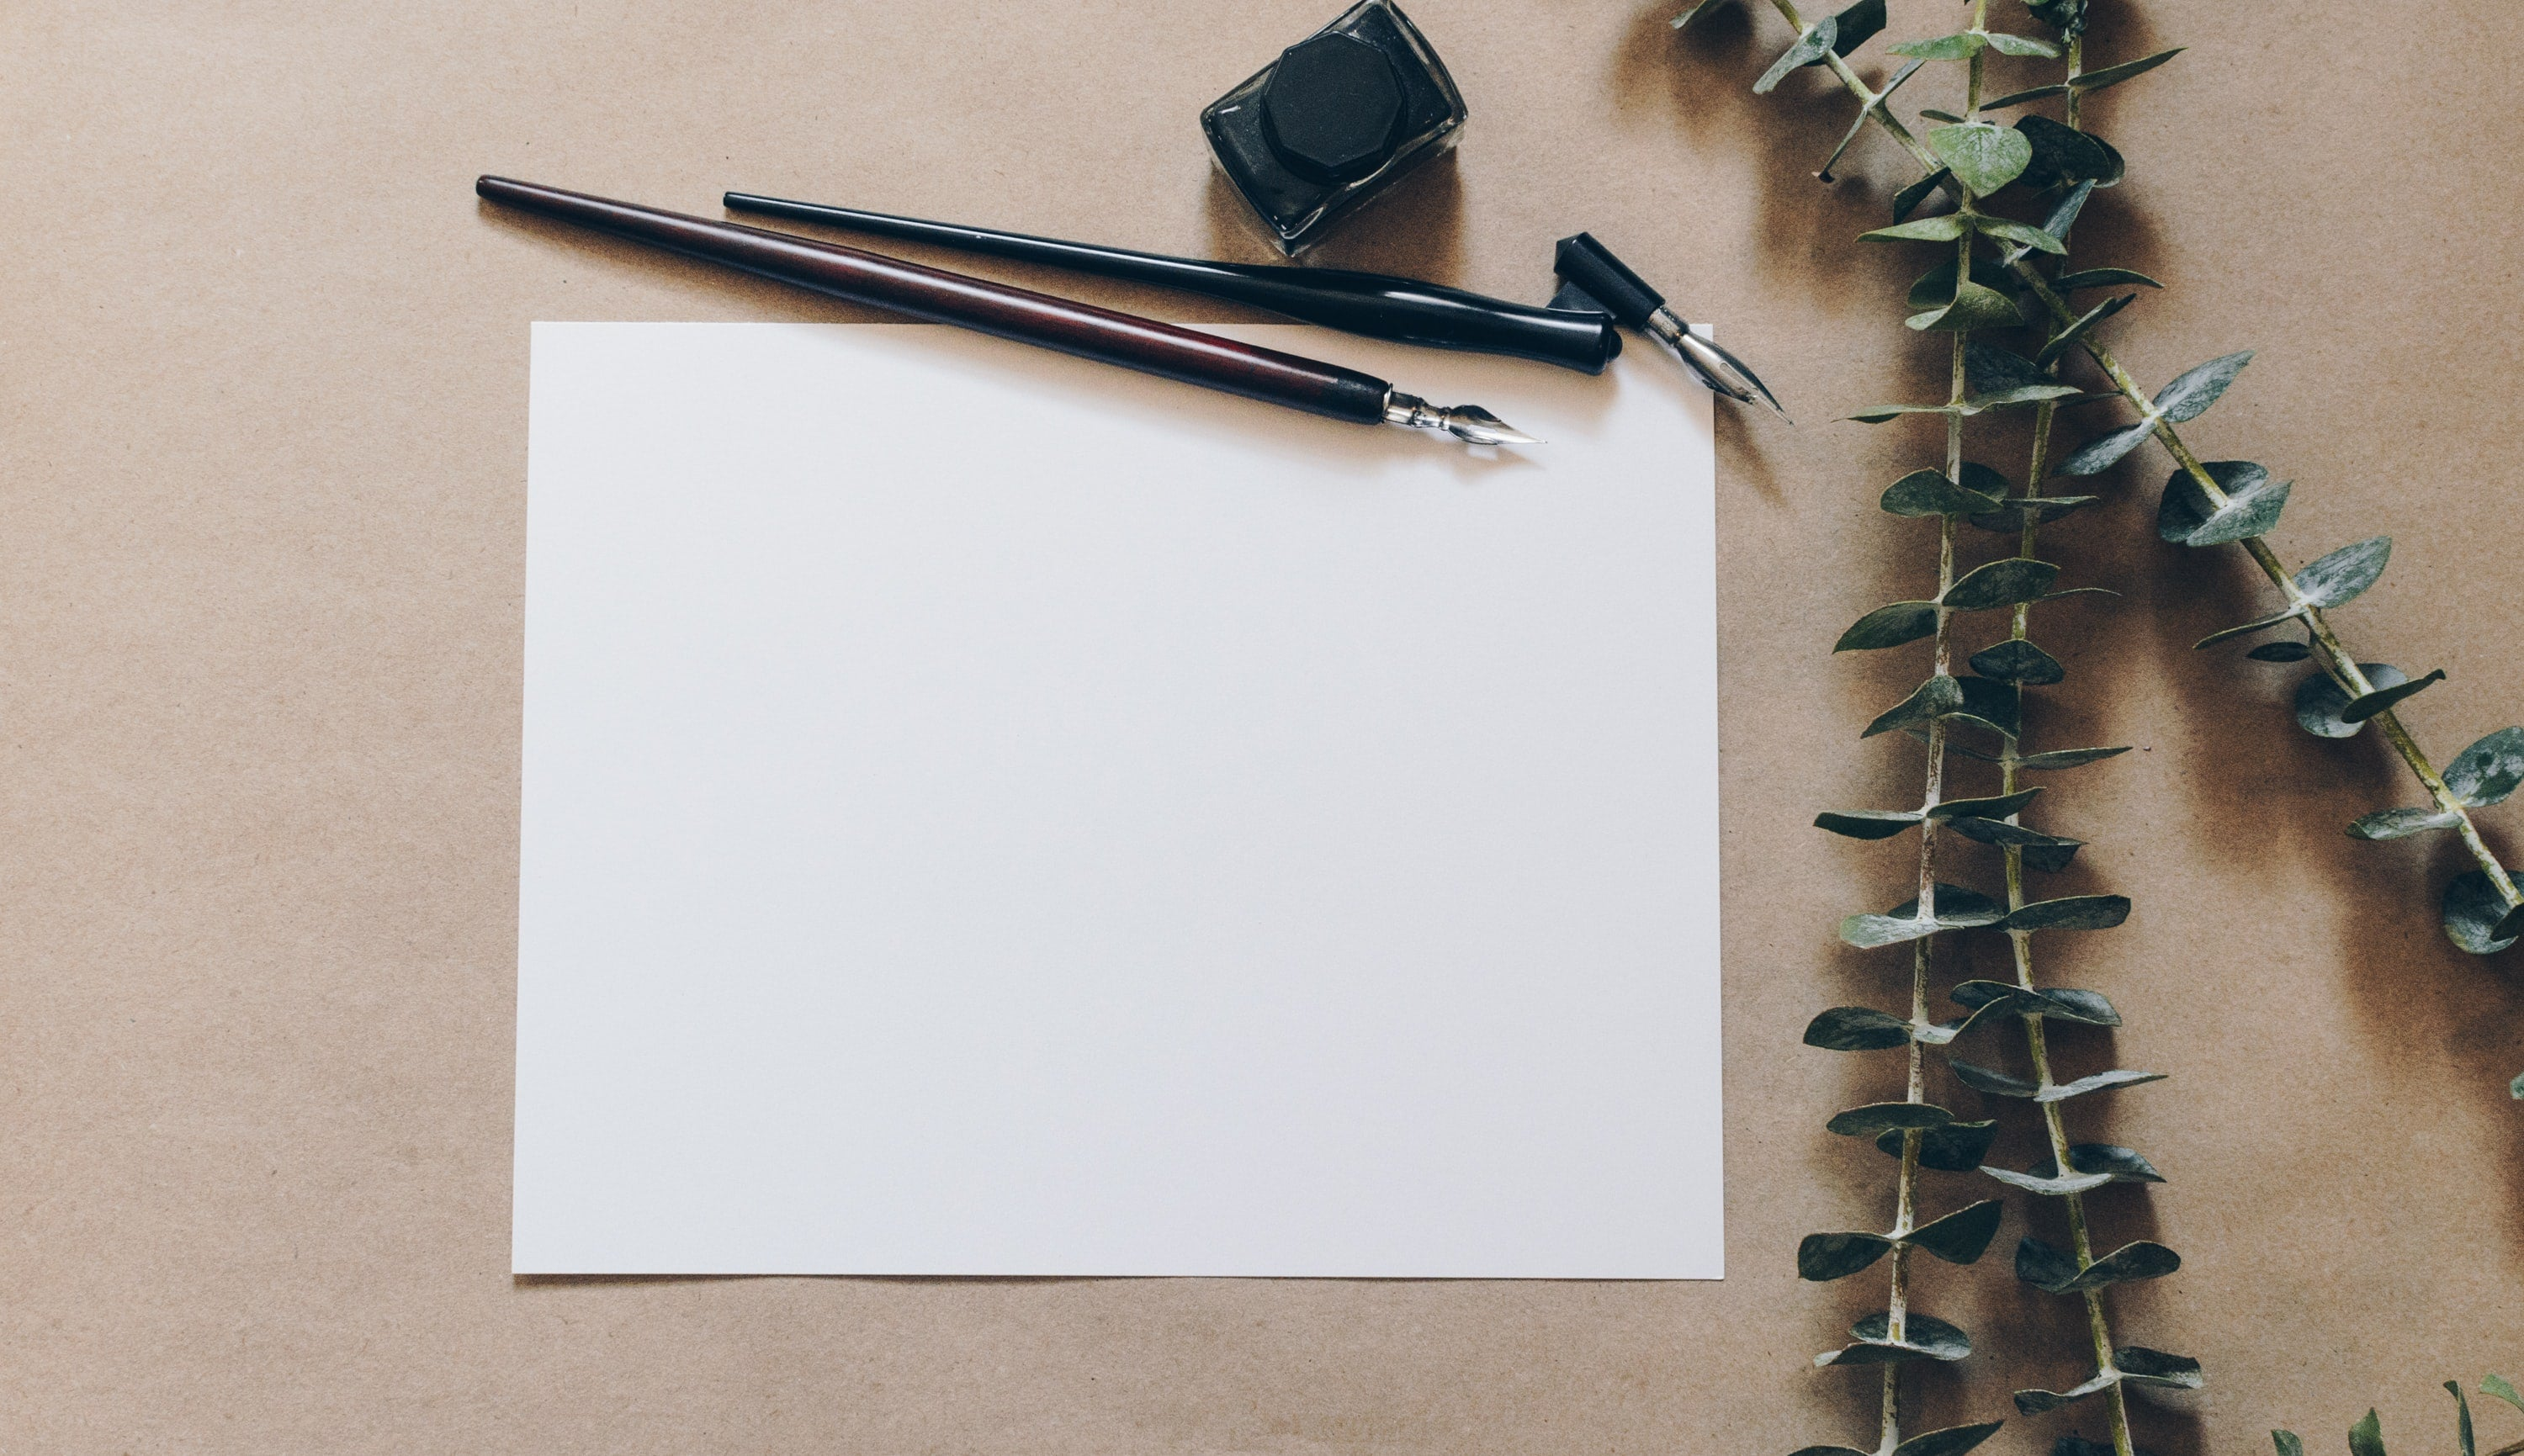 A blank piece of paper with calligraphy pens and flowers, ready to write a nice letter for someone.